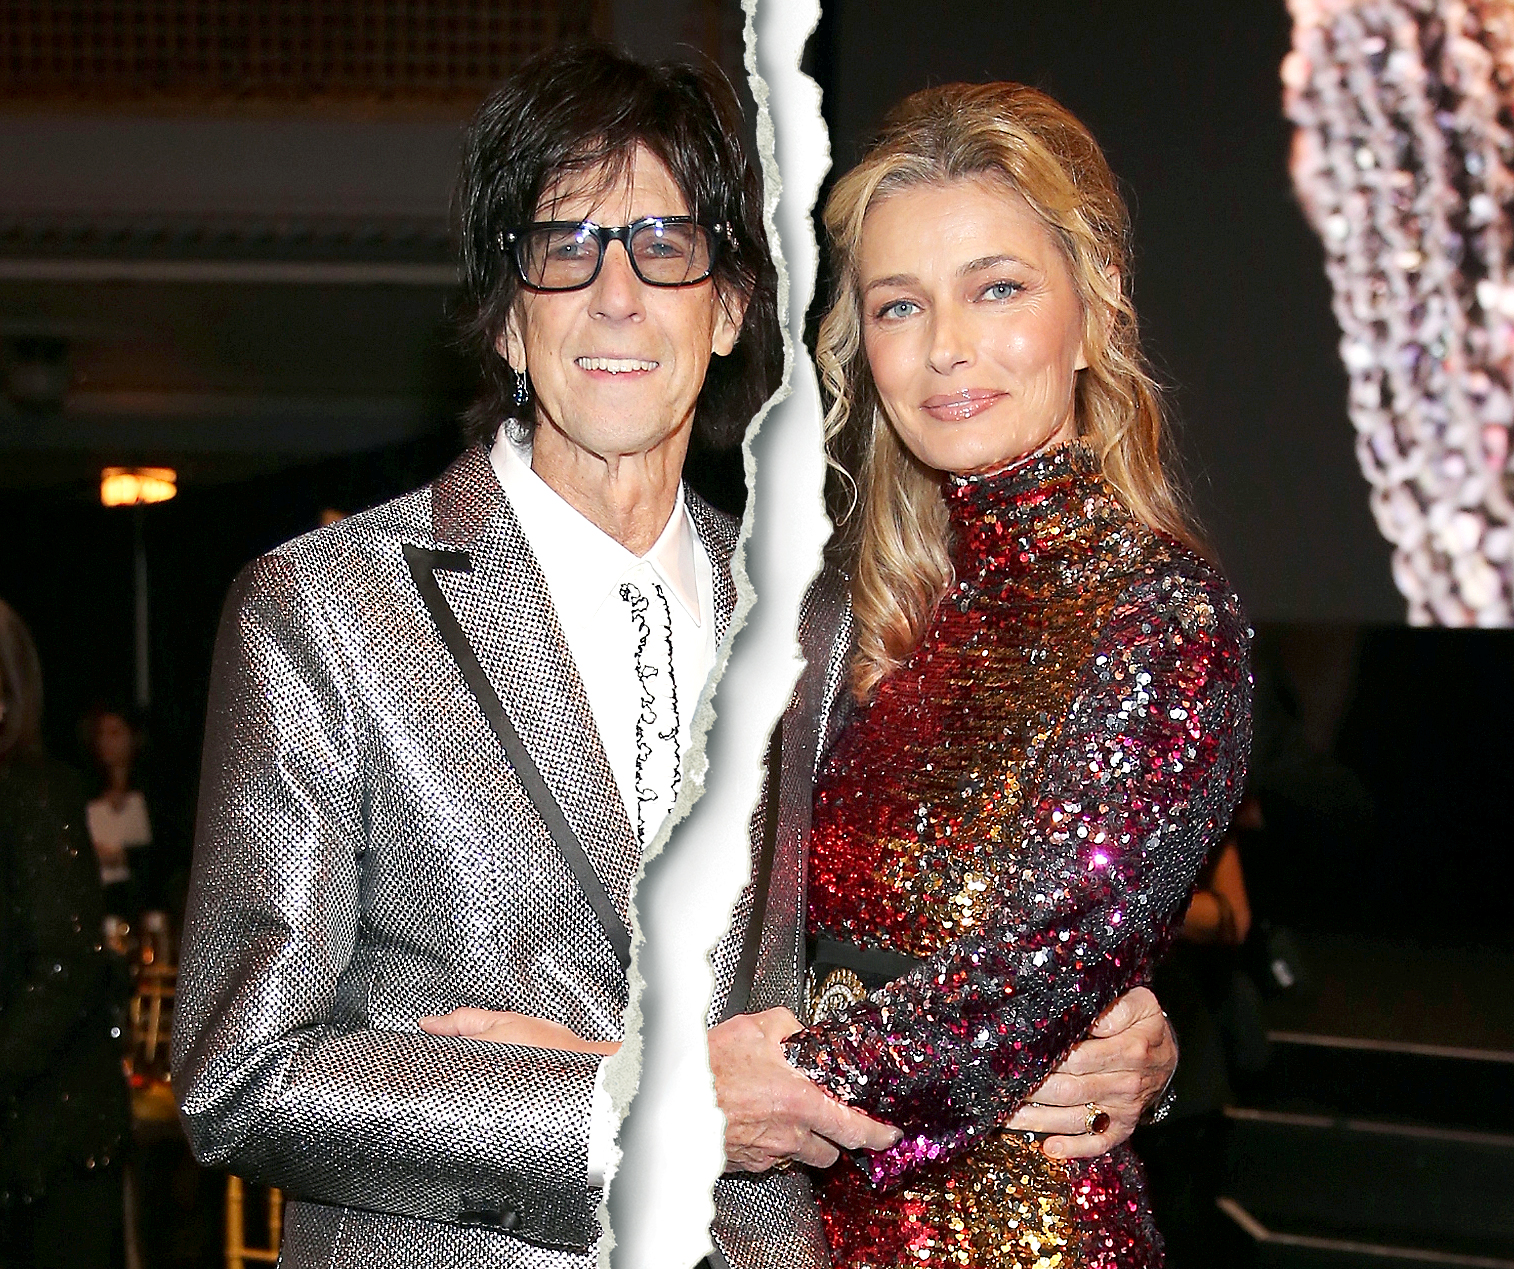 Model Paulina Porizkova, Cars rocker Ric Ocasek separate after 28 years